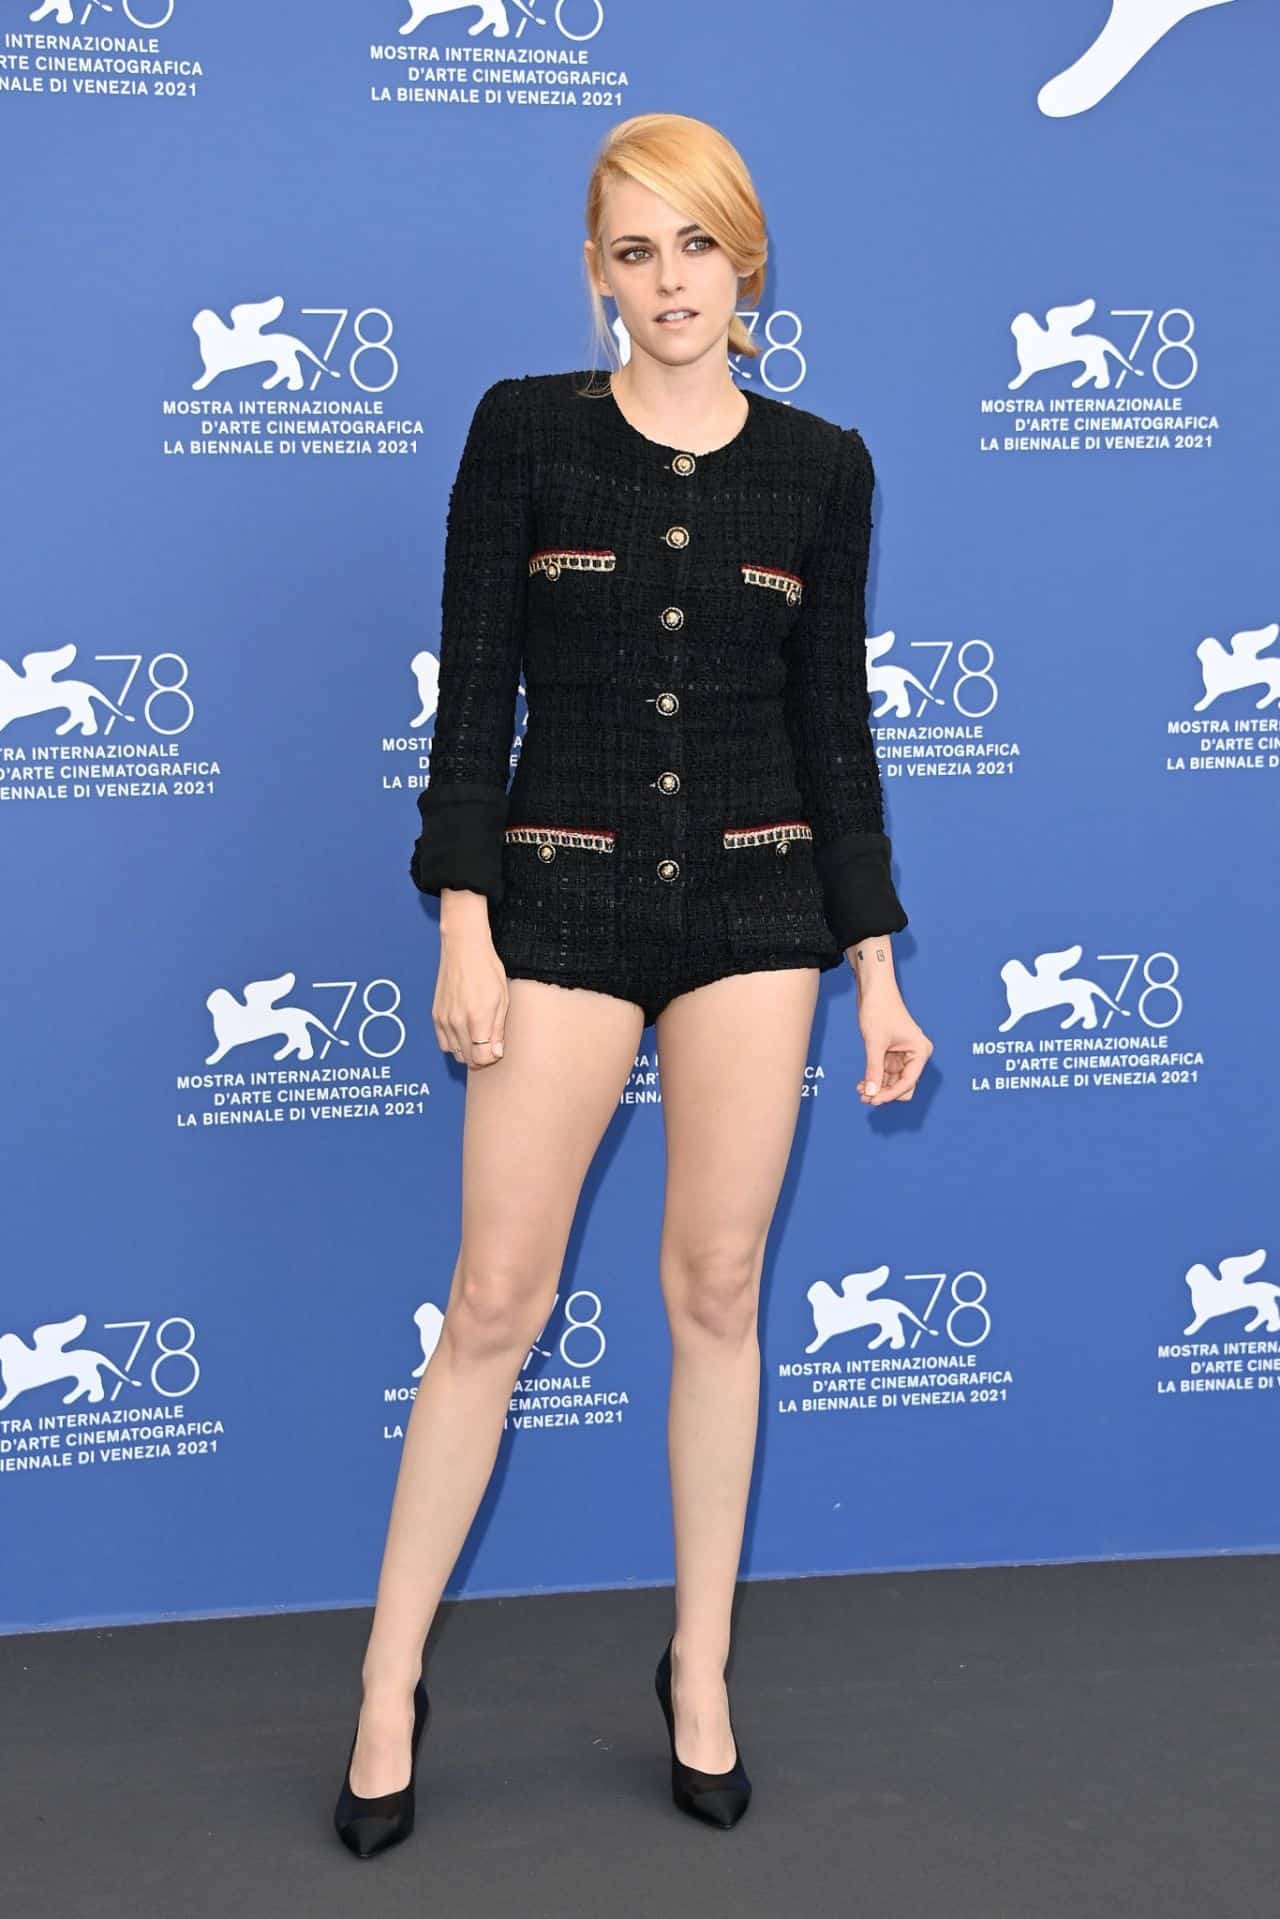 Kristen Stewart Made a Stylish Entrance to the Photocall for the New Movie Spencer